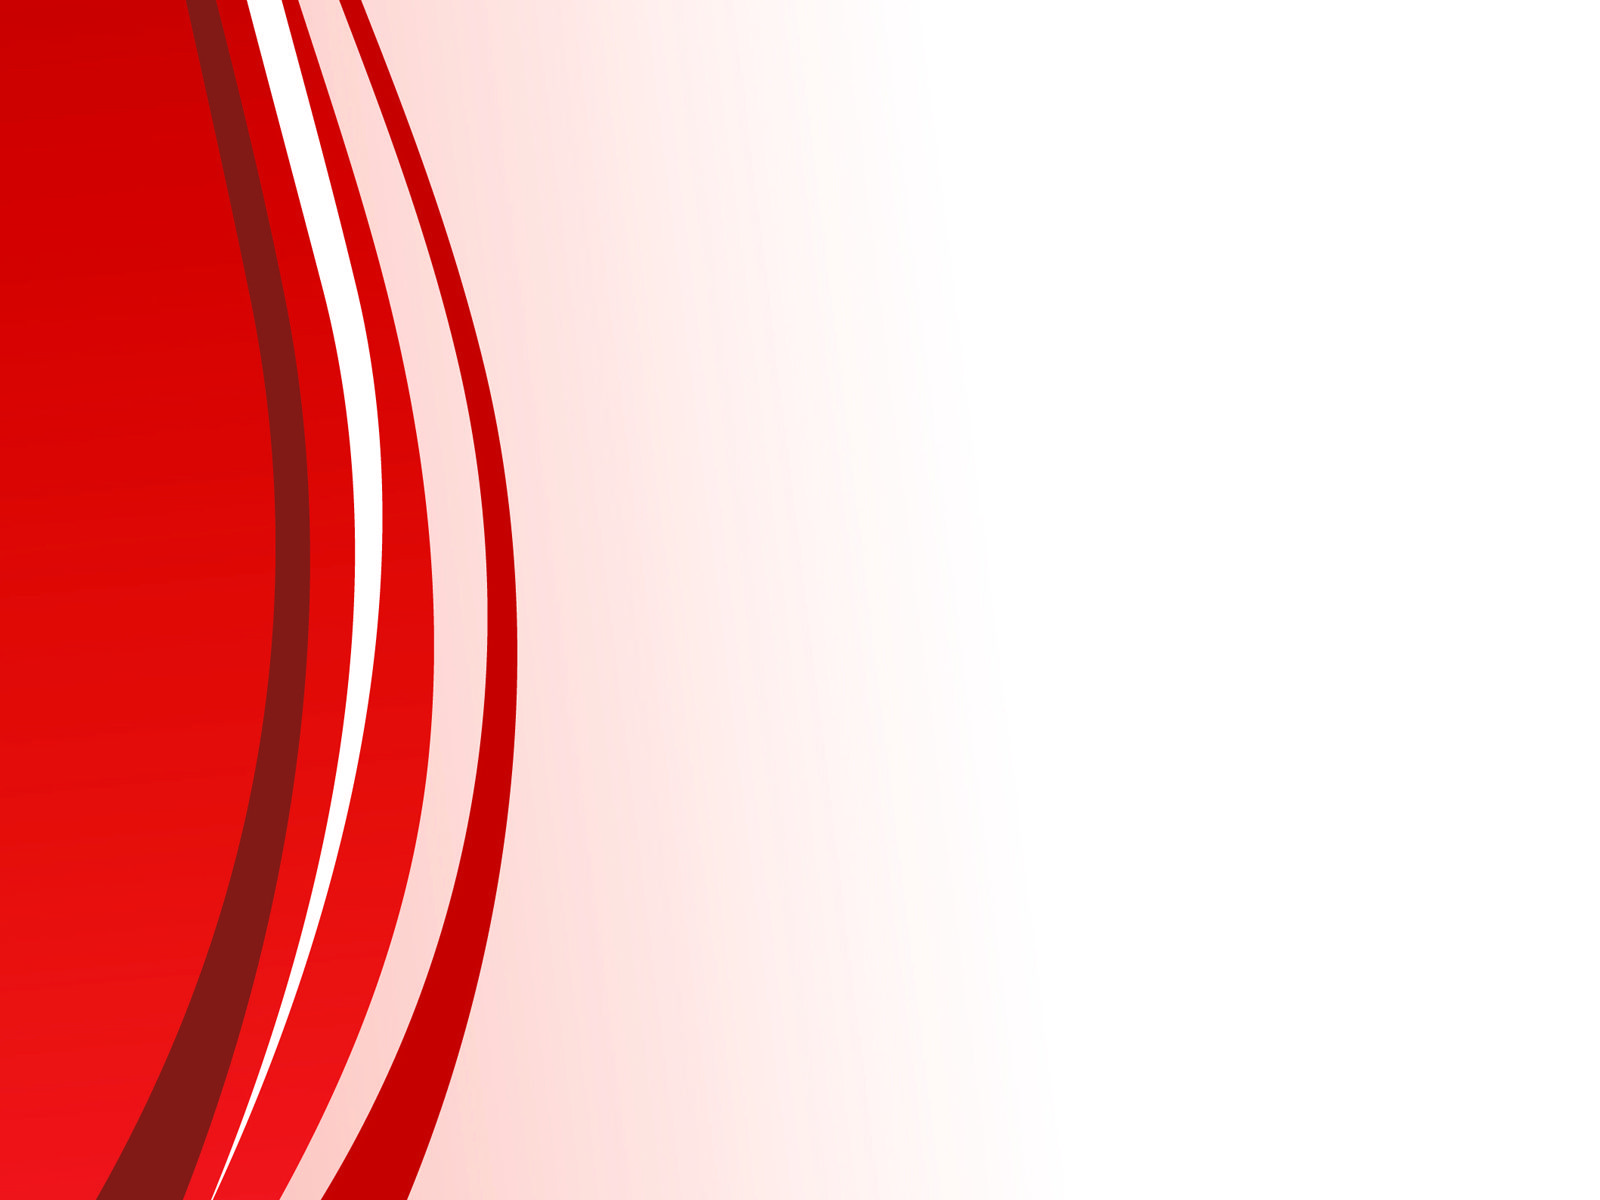 Red And White Backgrounds Wallpaper Cave Best Games Wallpapers